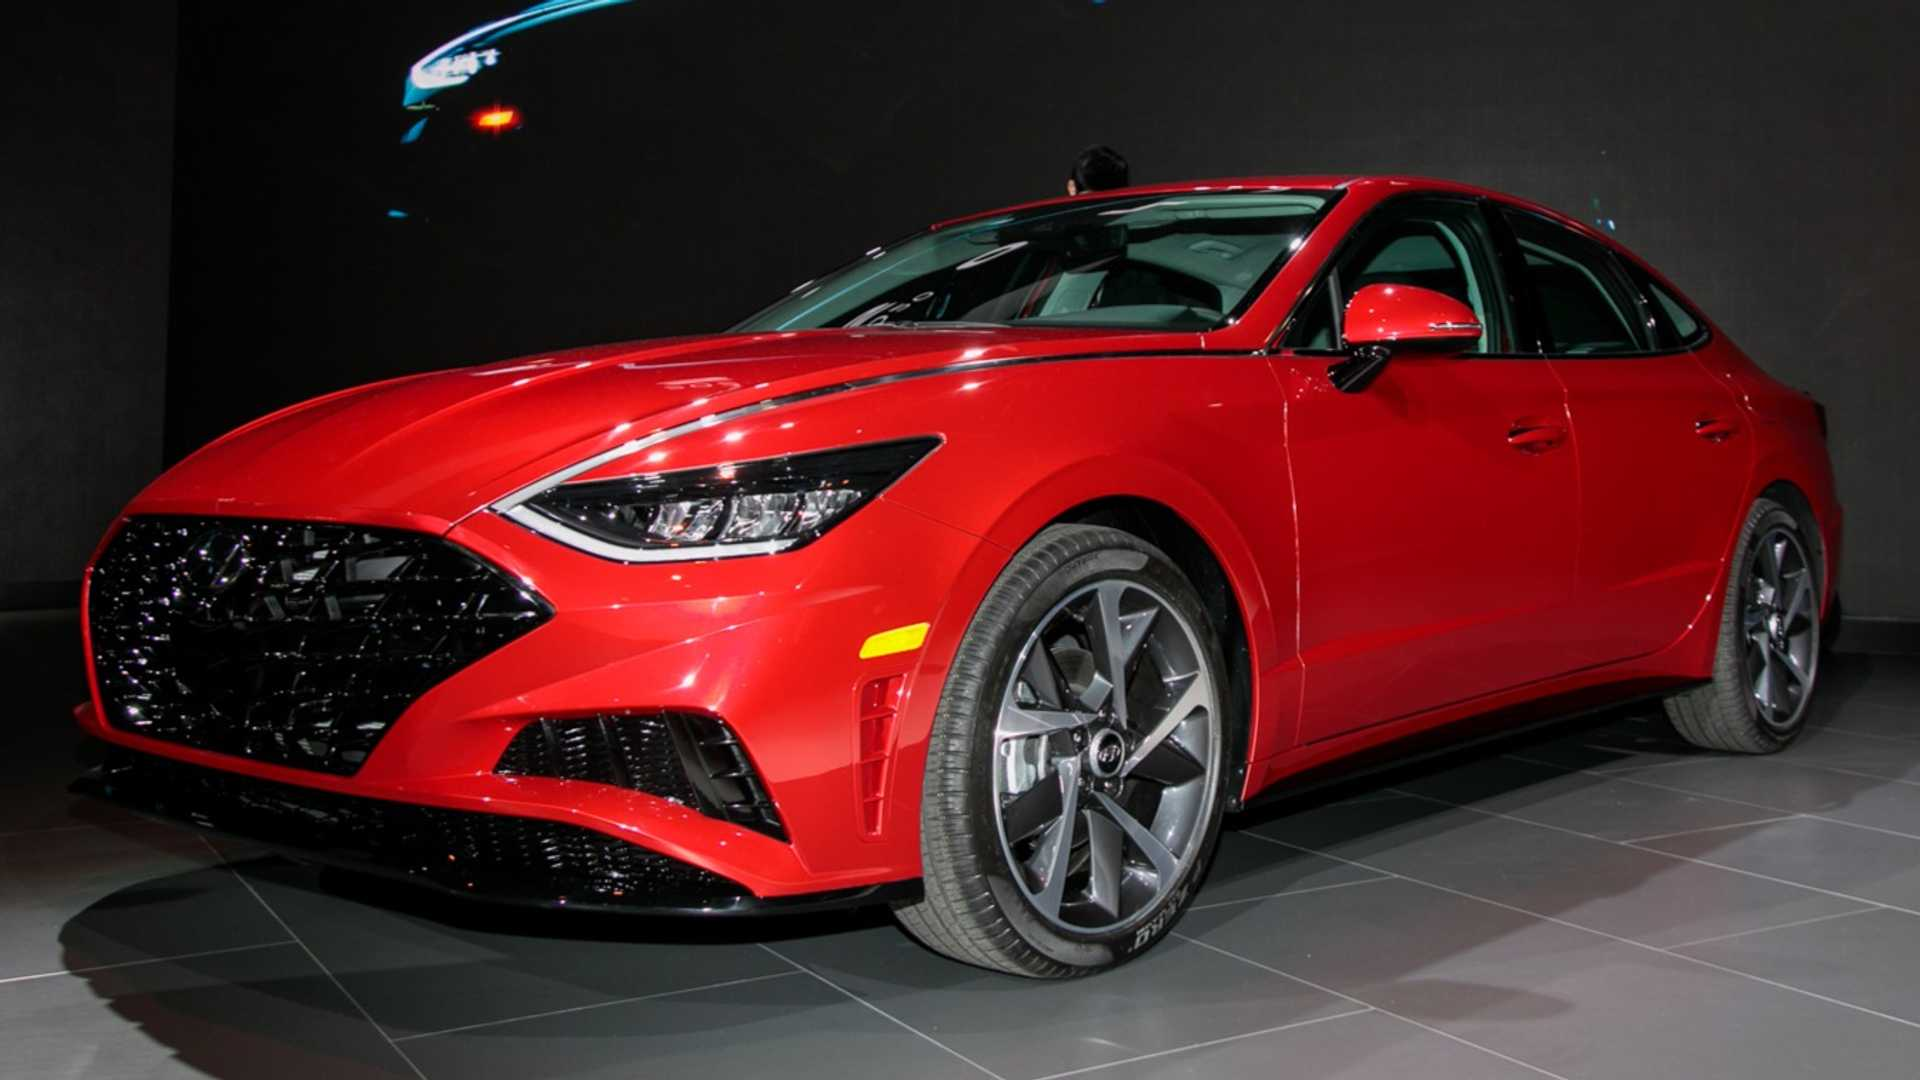 33 Best 2020 Hyundai Sonata Engine Options Style